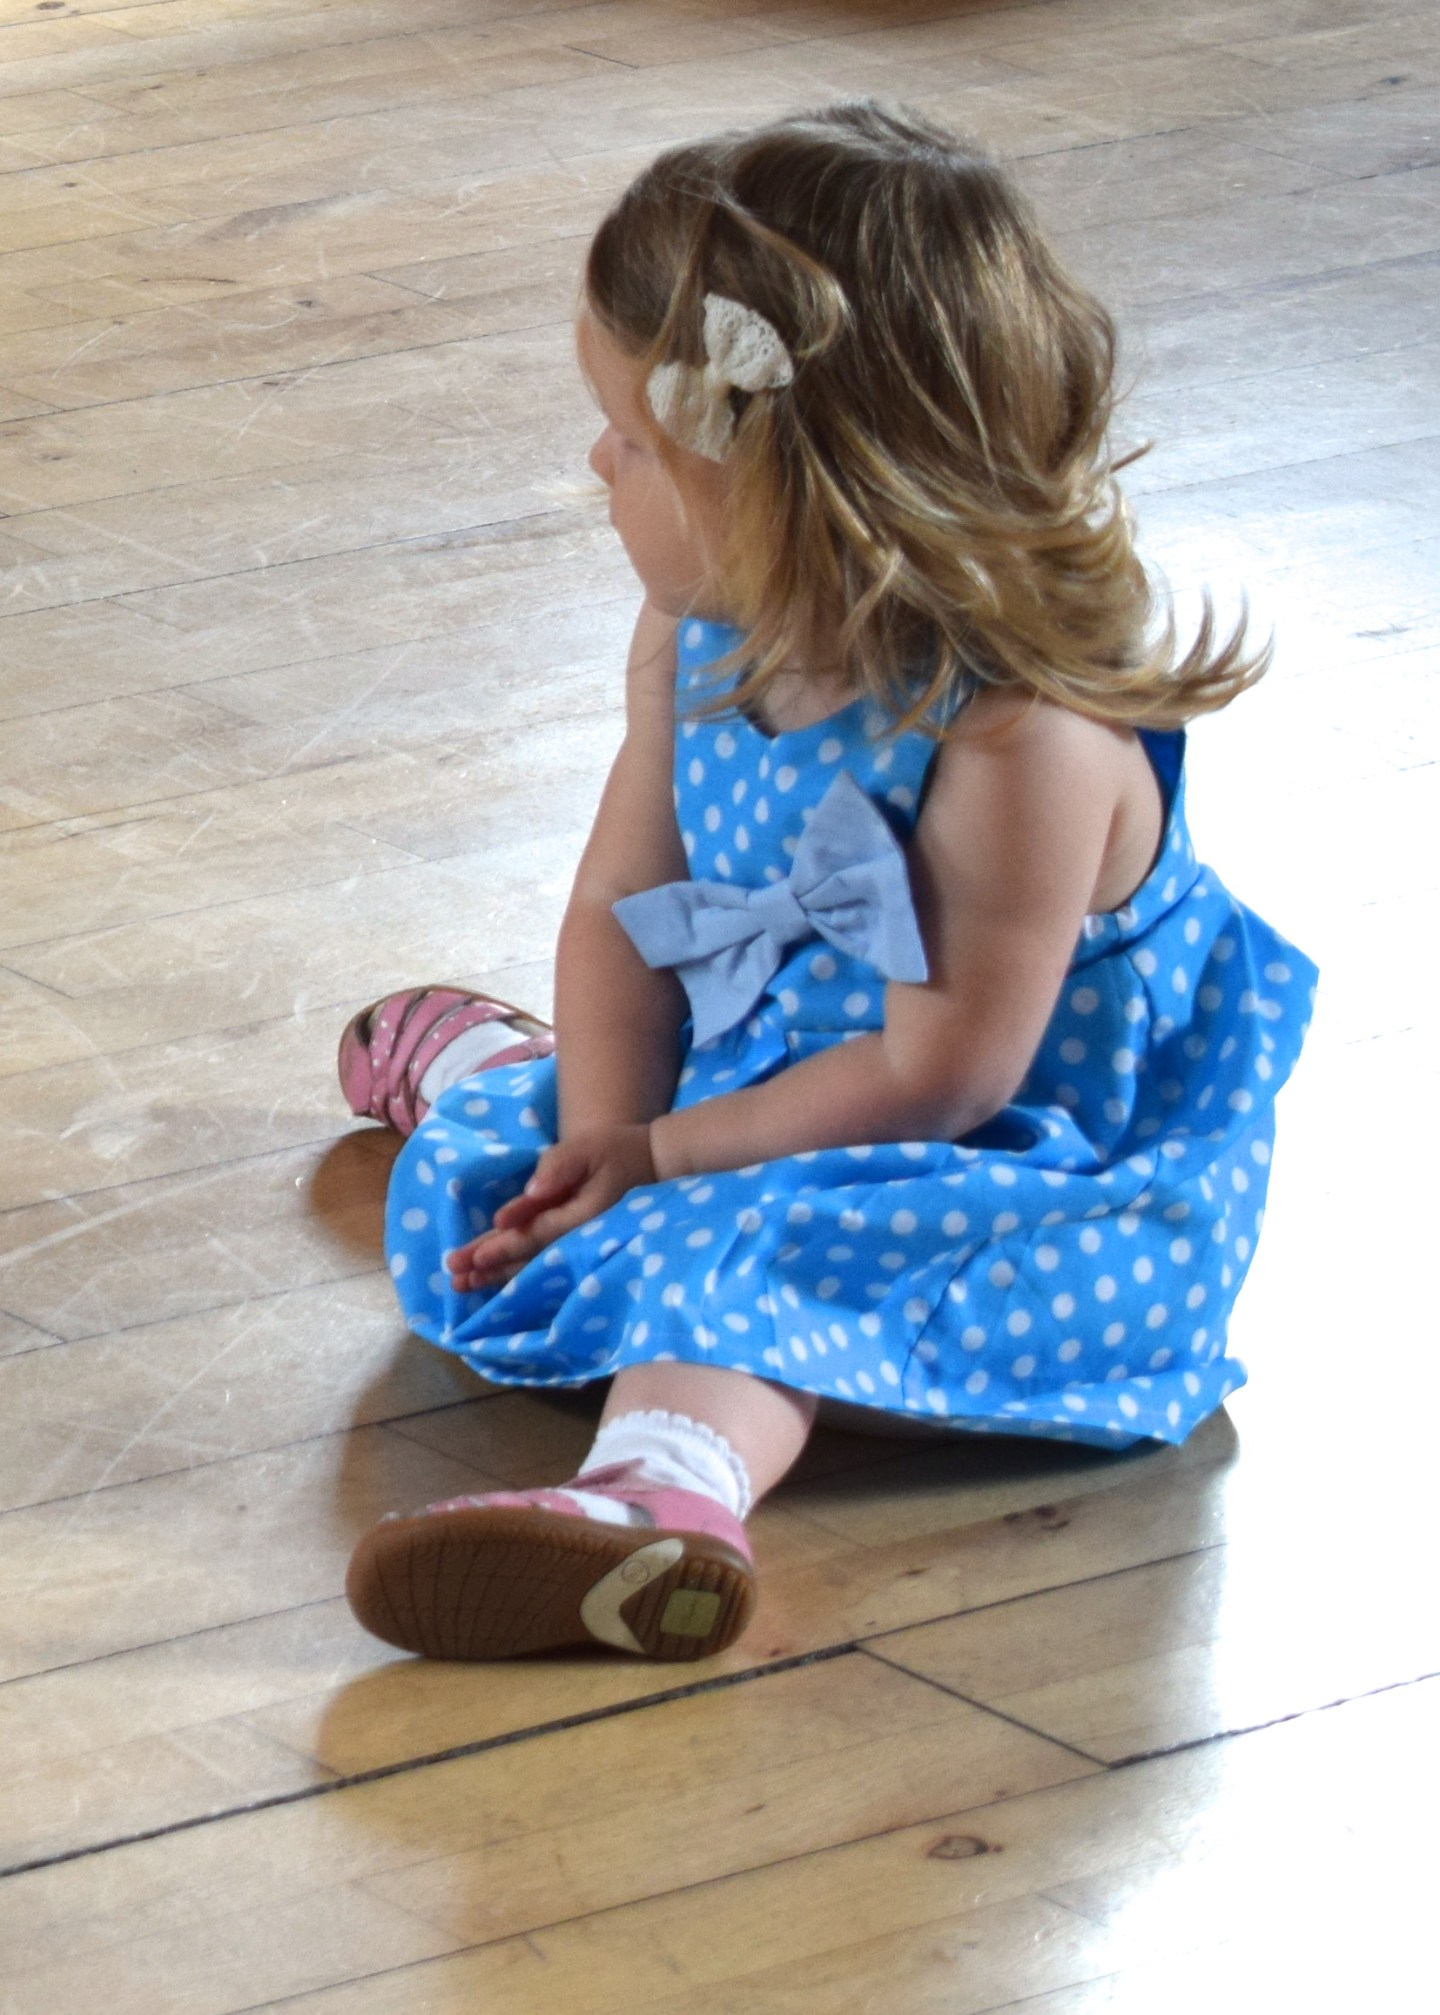 A party dress from The Princess and the Frock